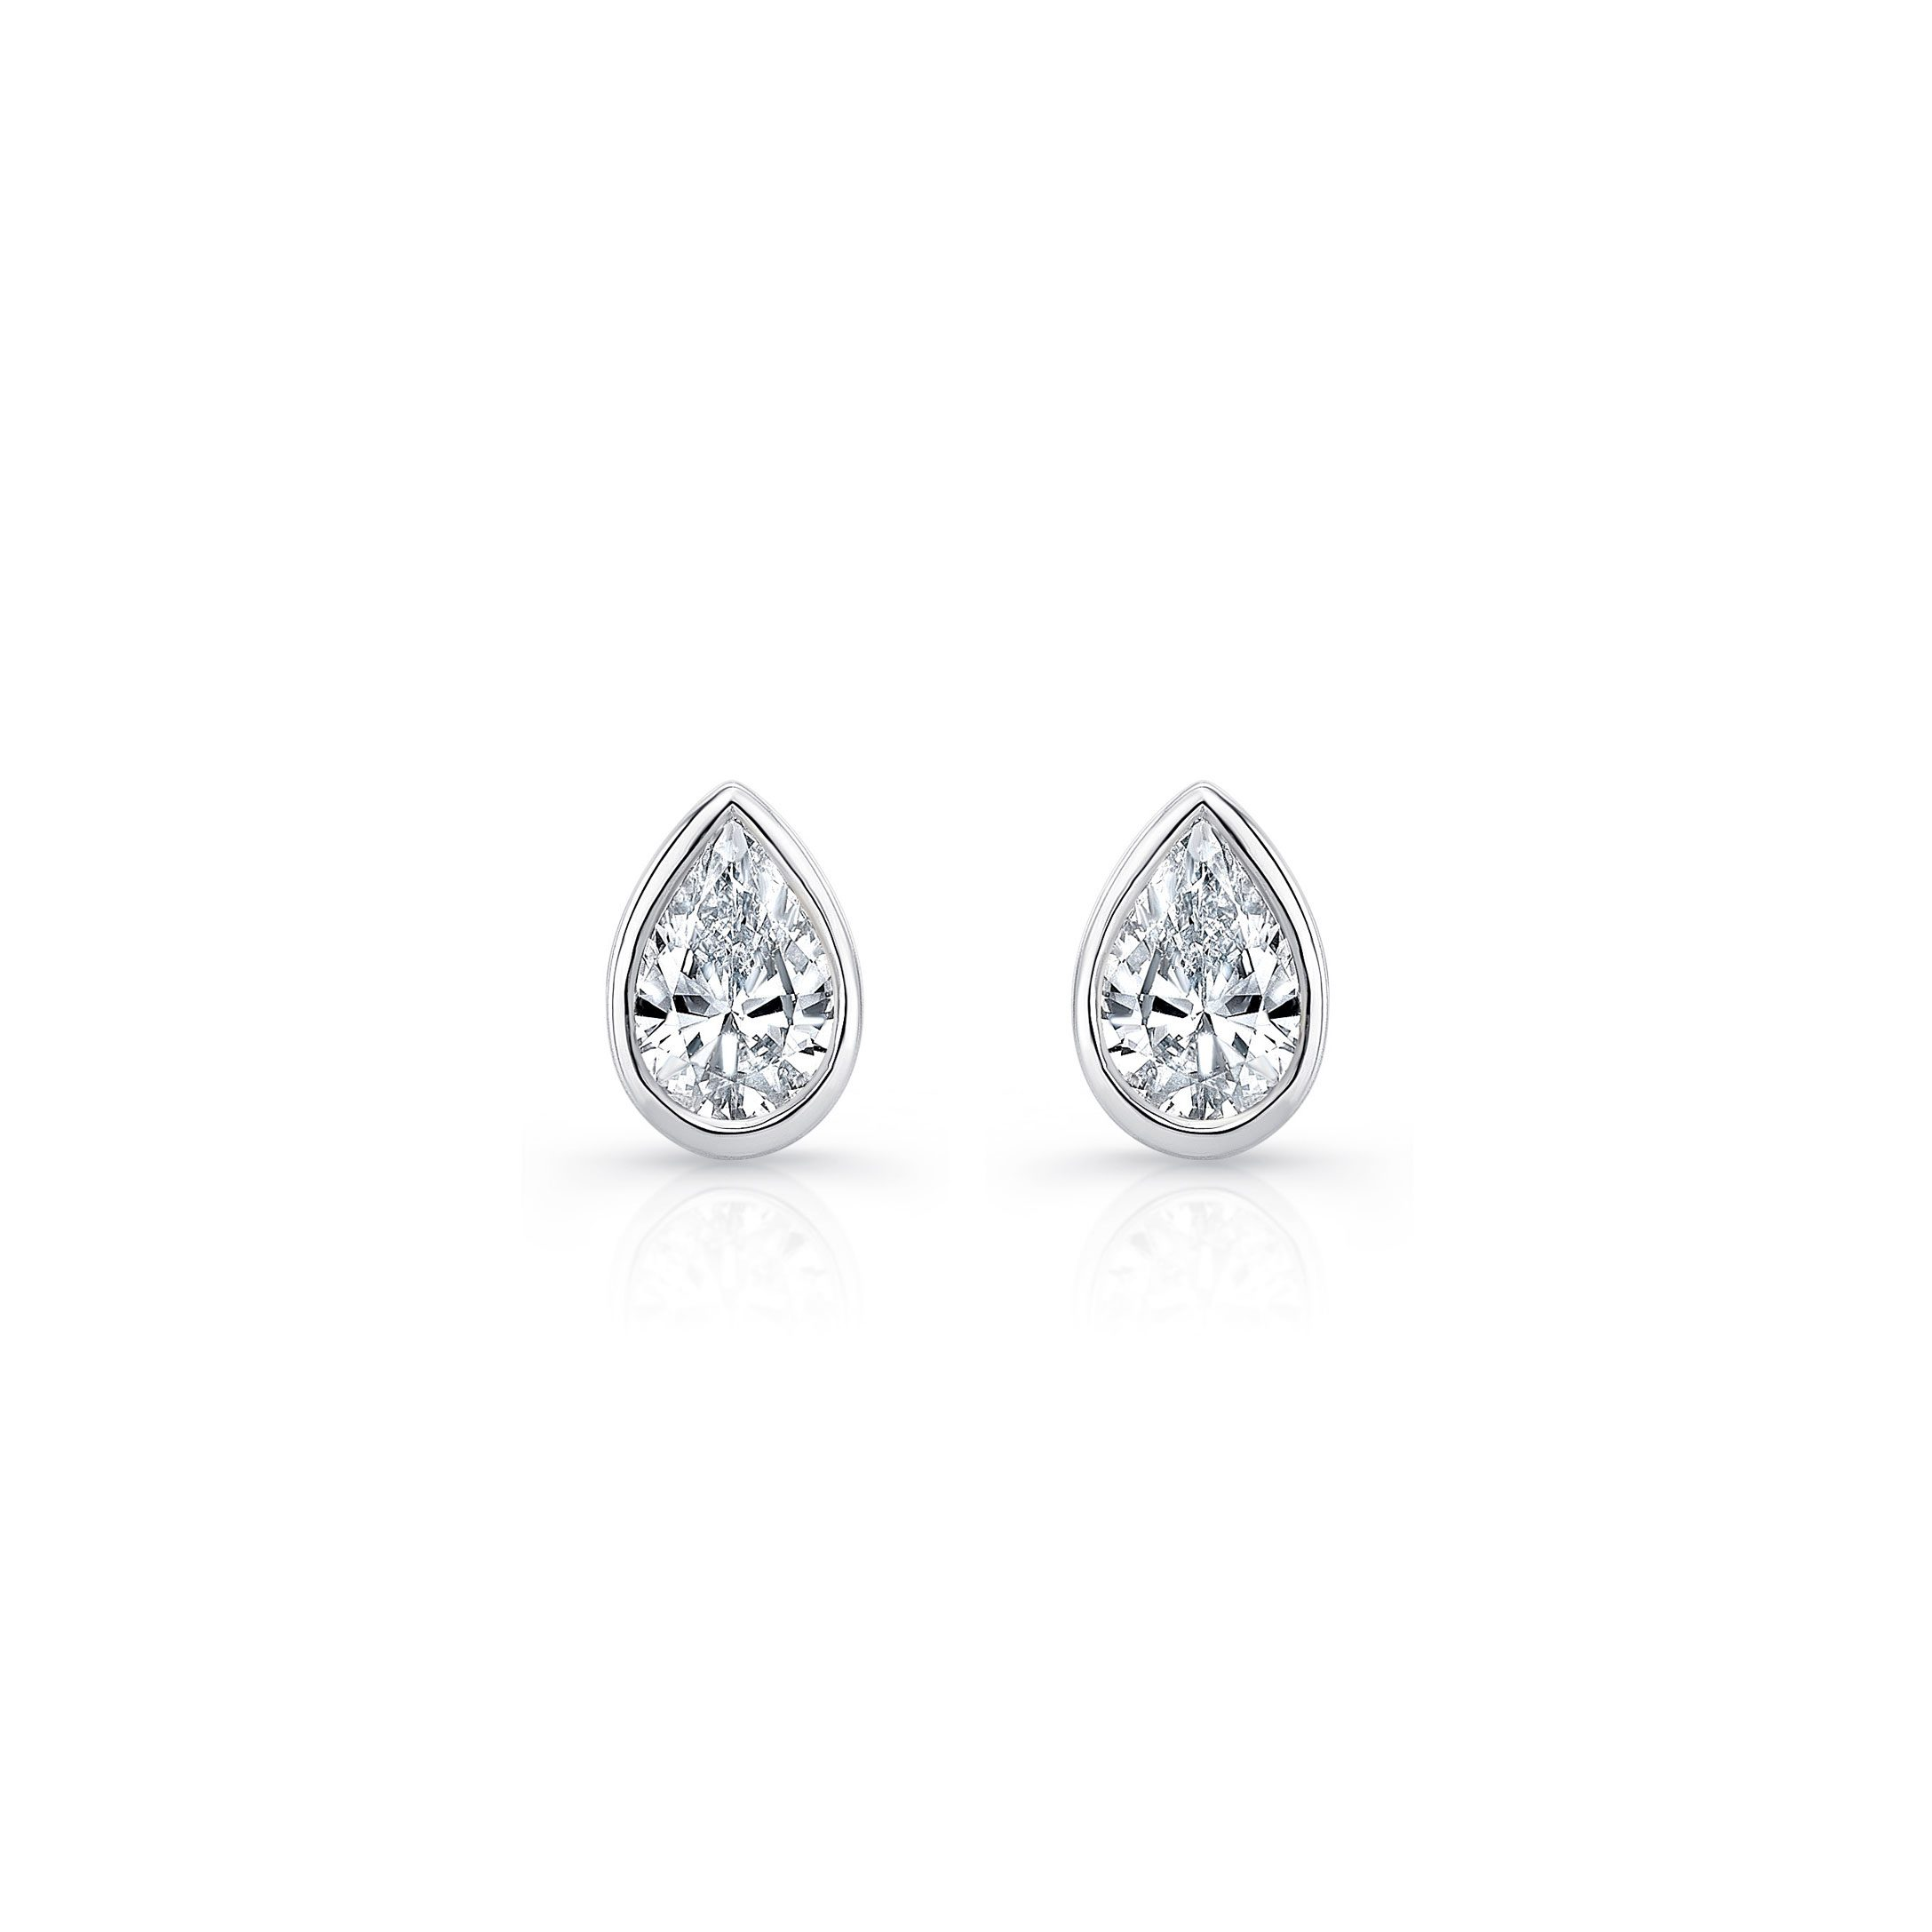 La Petite Pear Bezel Diamond Stud Earrings in 18k White Gold Front View by Oui by Jean Dousset